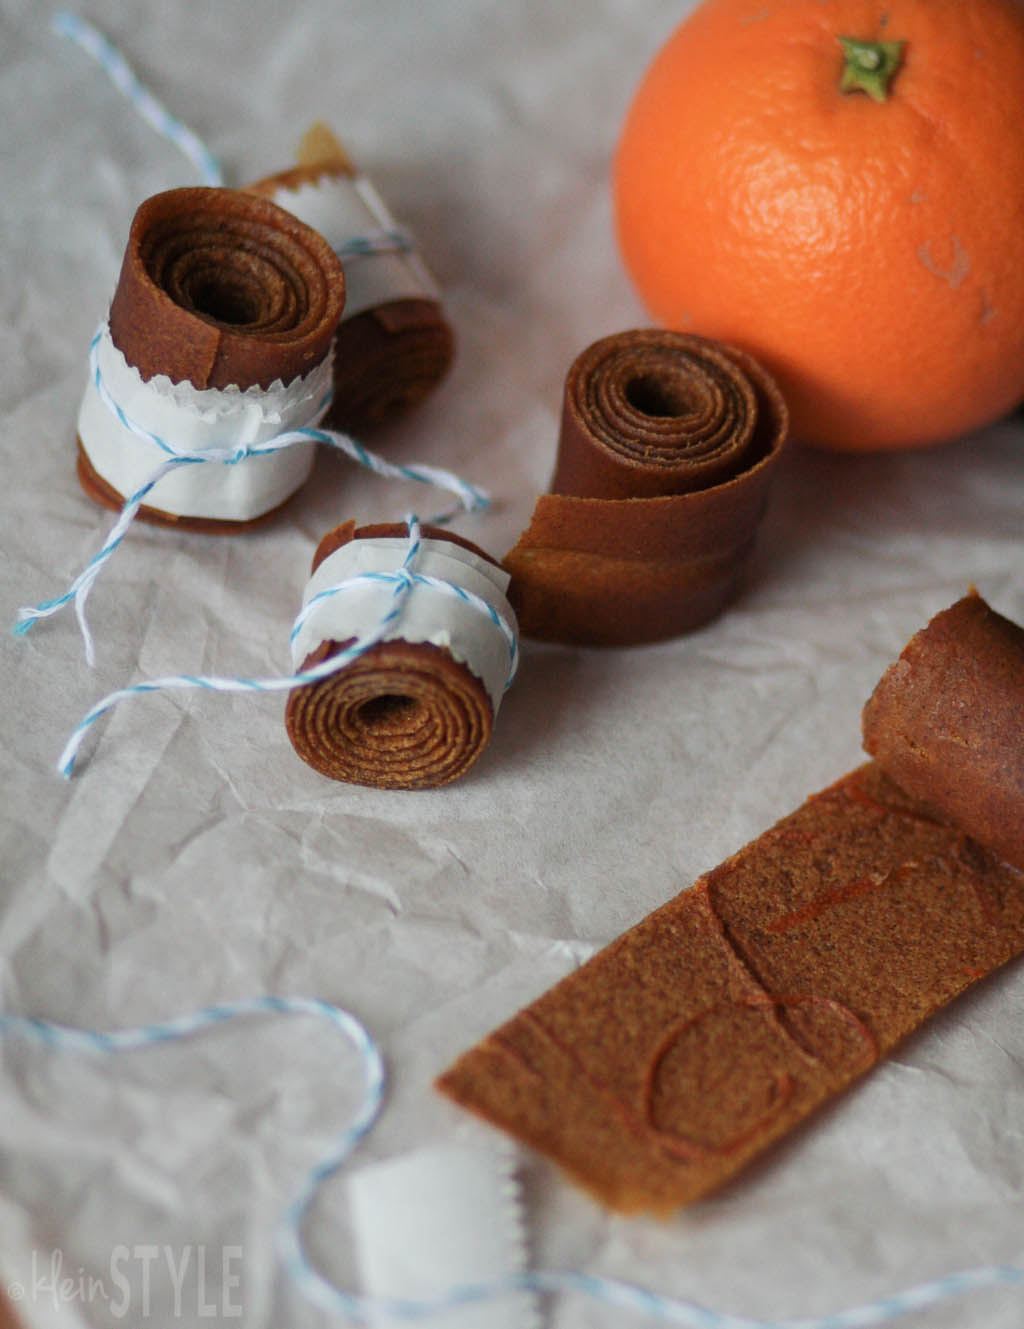 Paddingtons Orangen Fruit-Rolls Rezept by kleinSTYLE.com